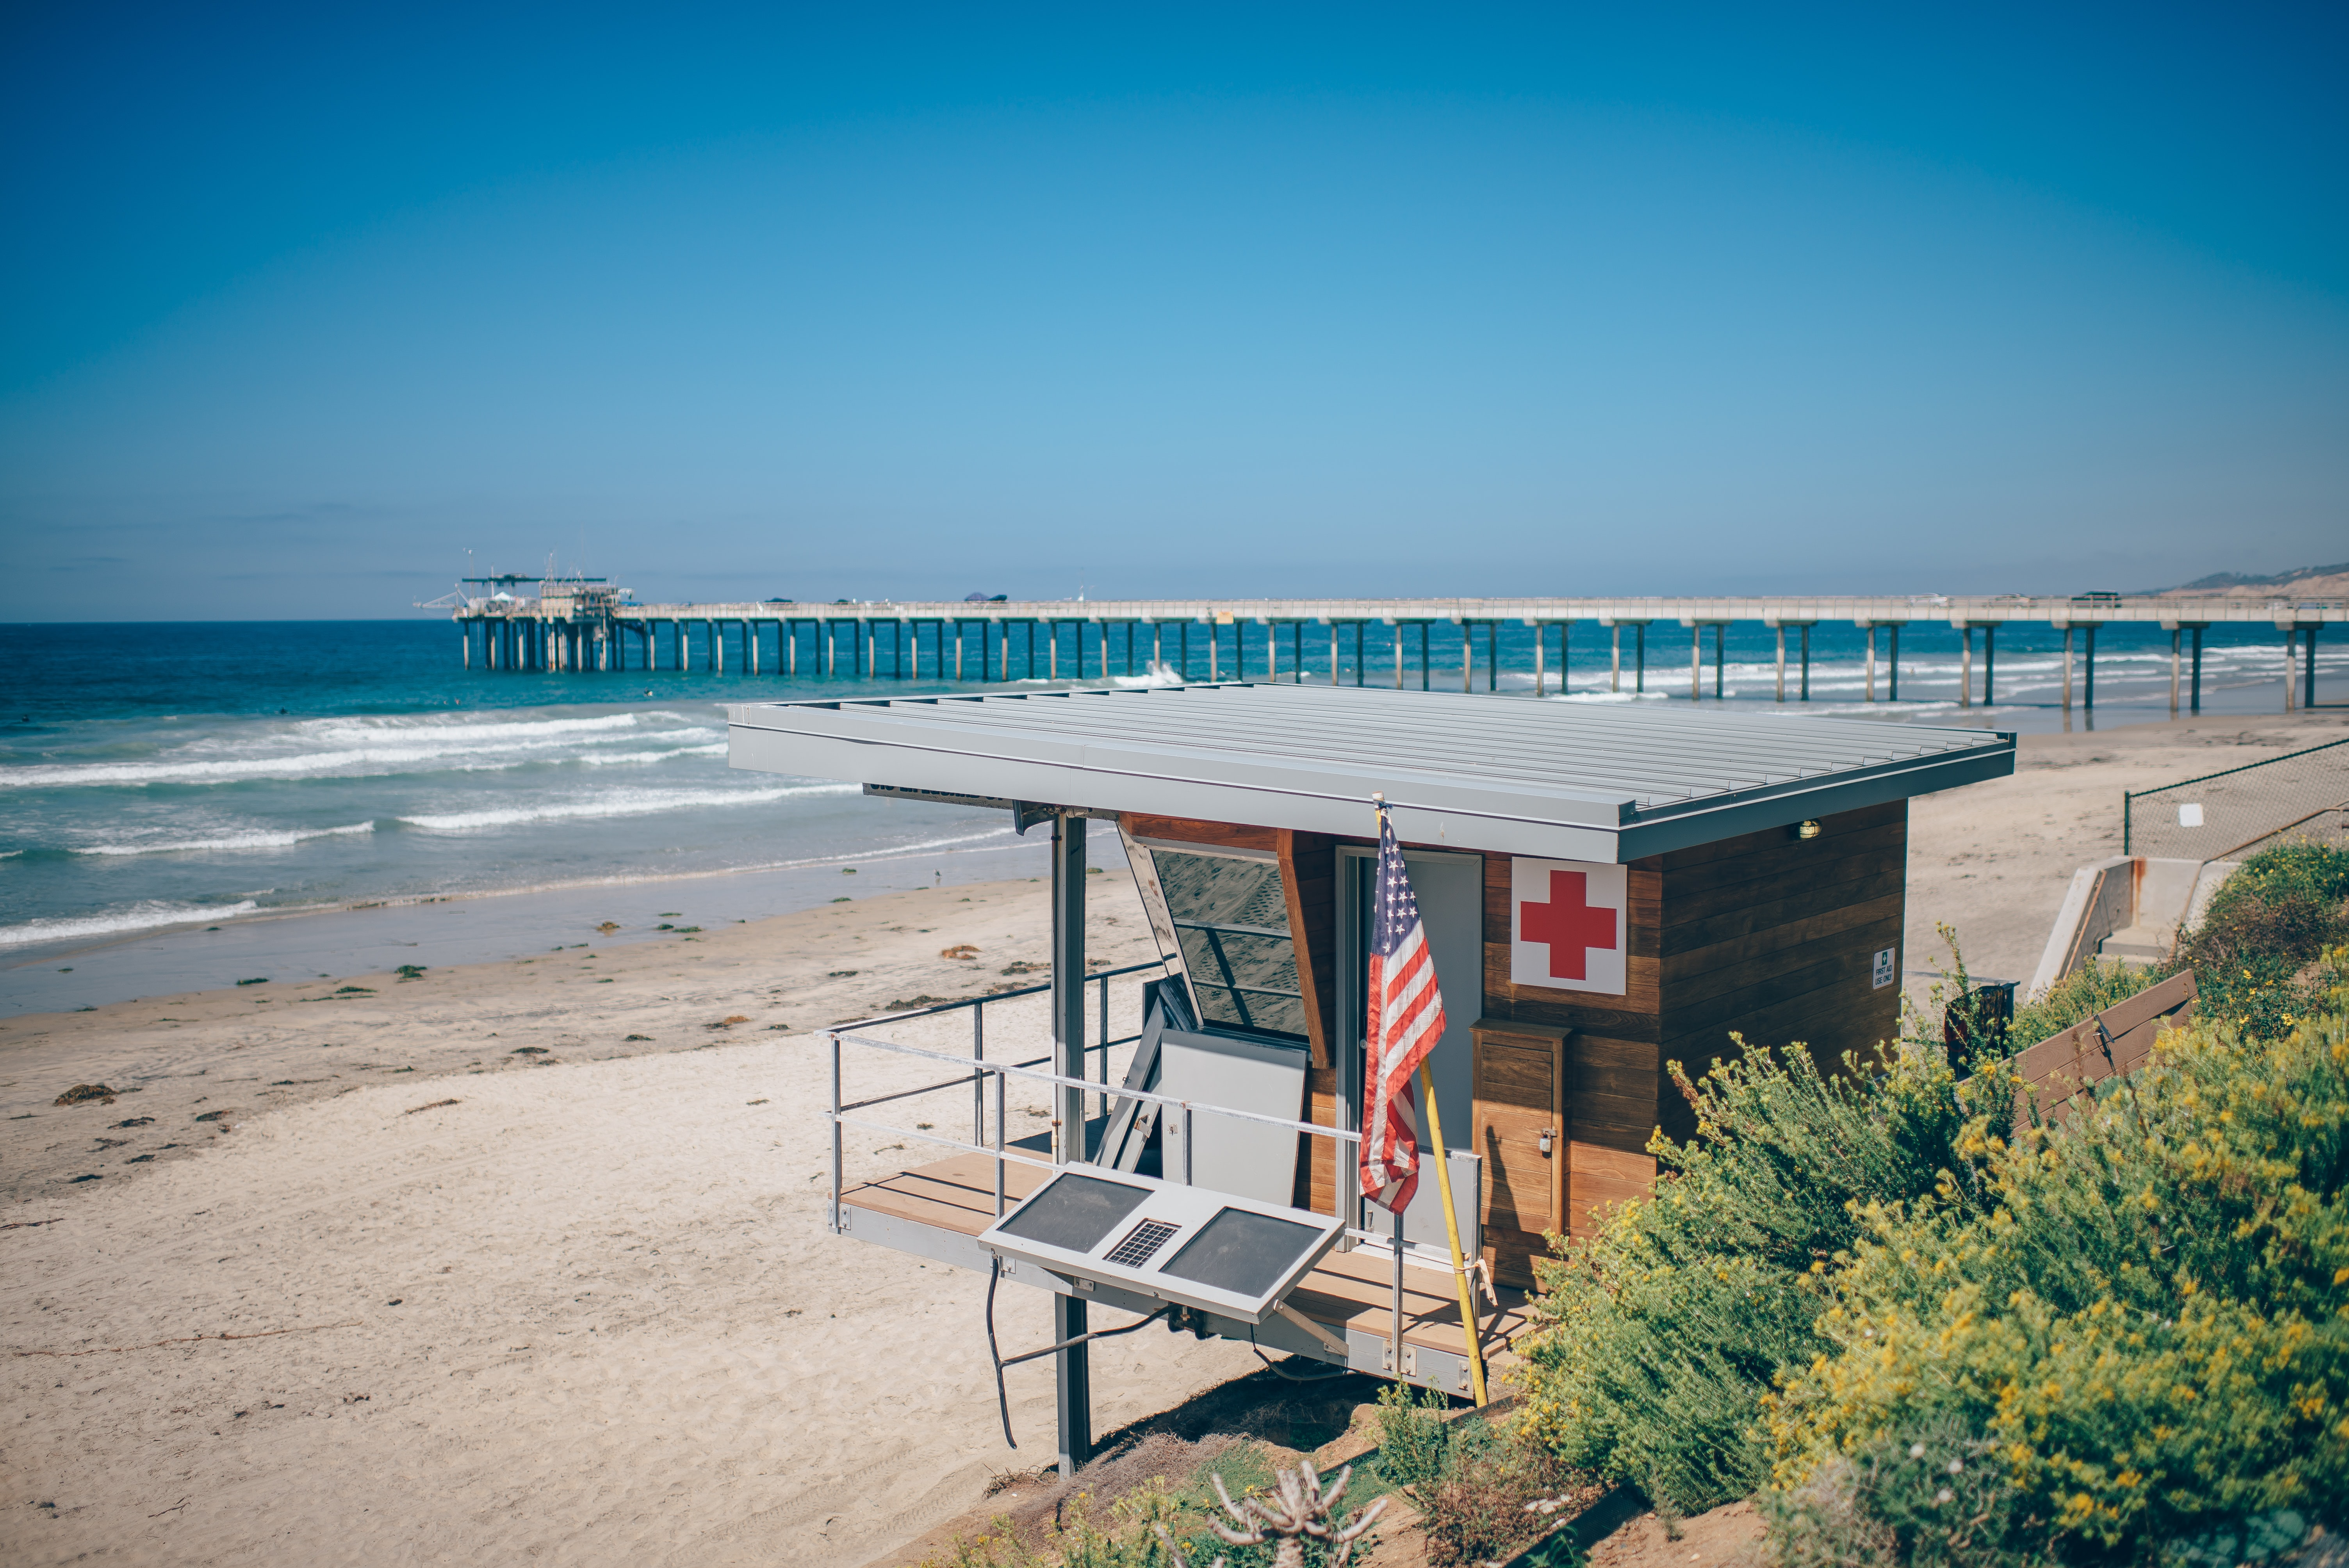 Exquisite lifeguard quarters at beach in an ocean with a boardwalk leading up to pier